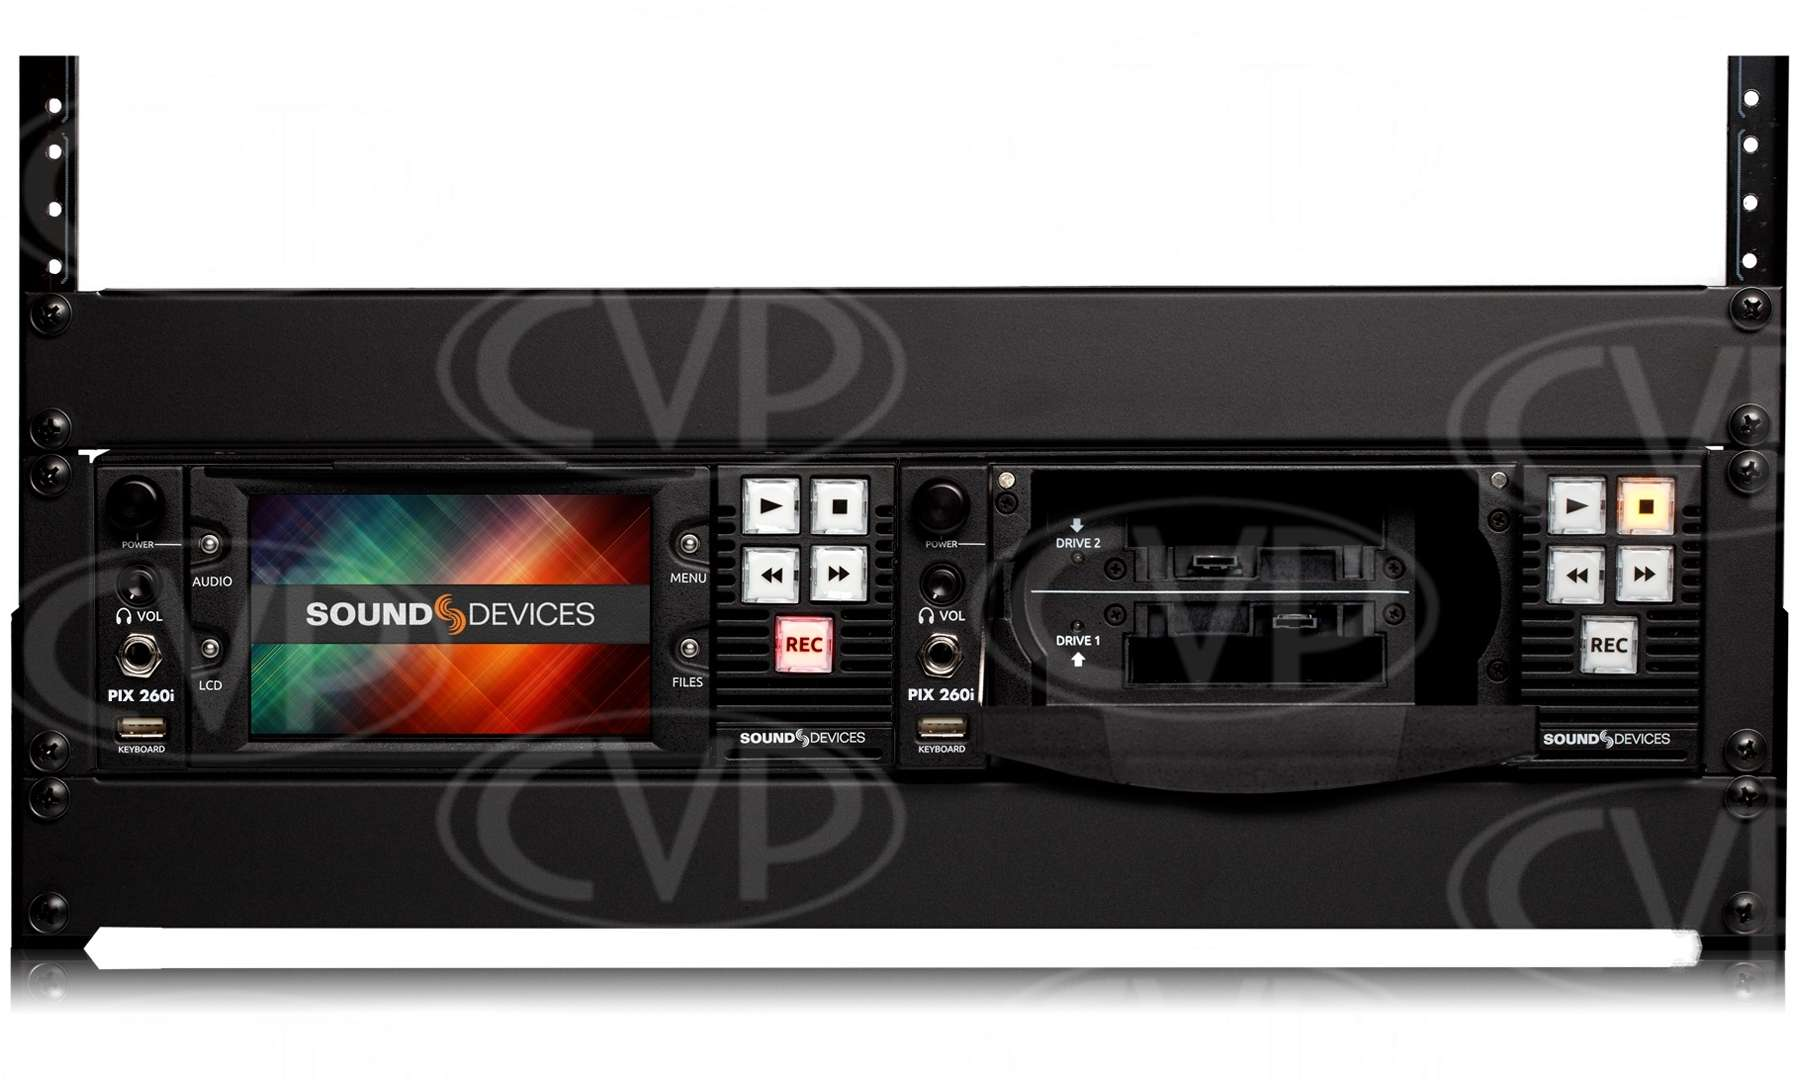 Sound Devices PIX 260i Video Recorder Drivers Update